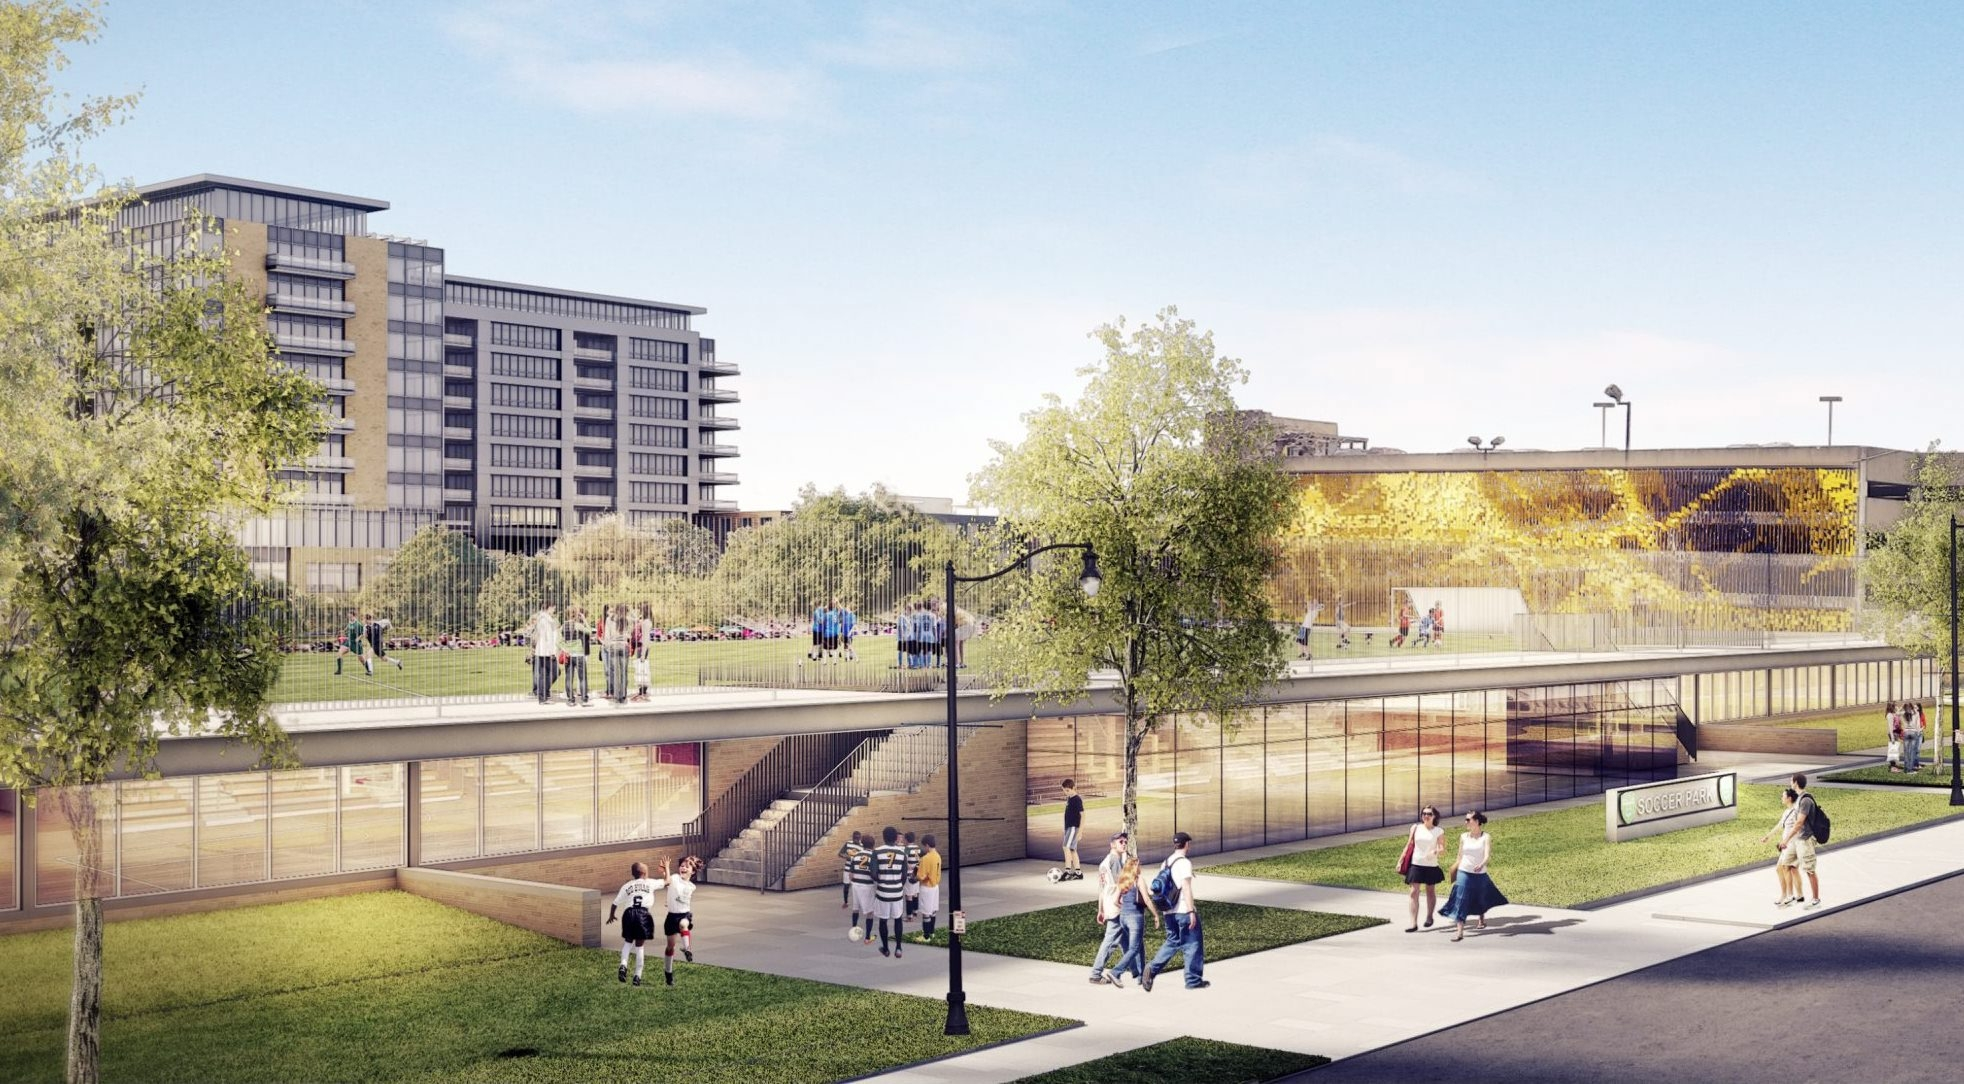 A rendering of the future soccer park designed by Cannon Design at the site of Women & Children's Hospital in Buffalo.